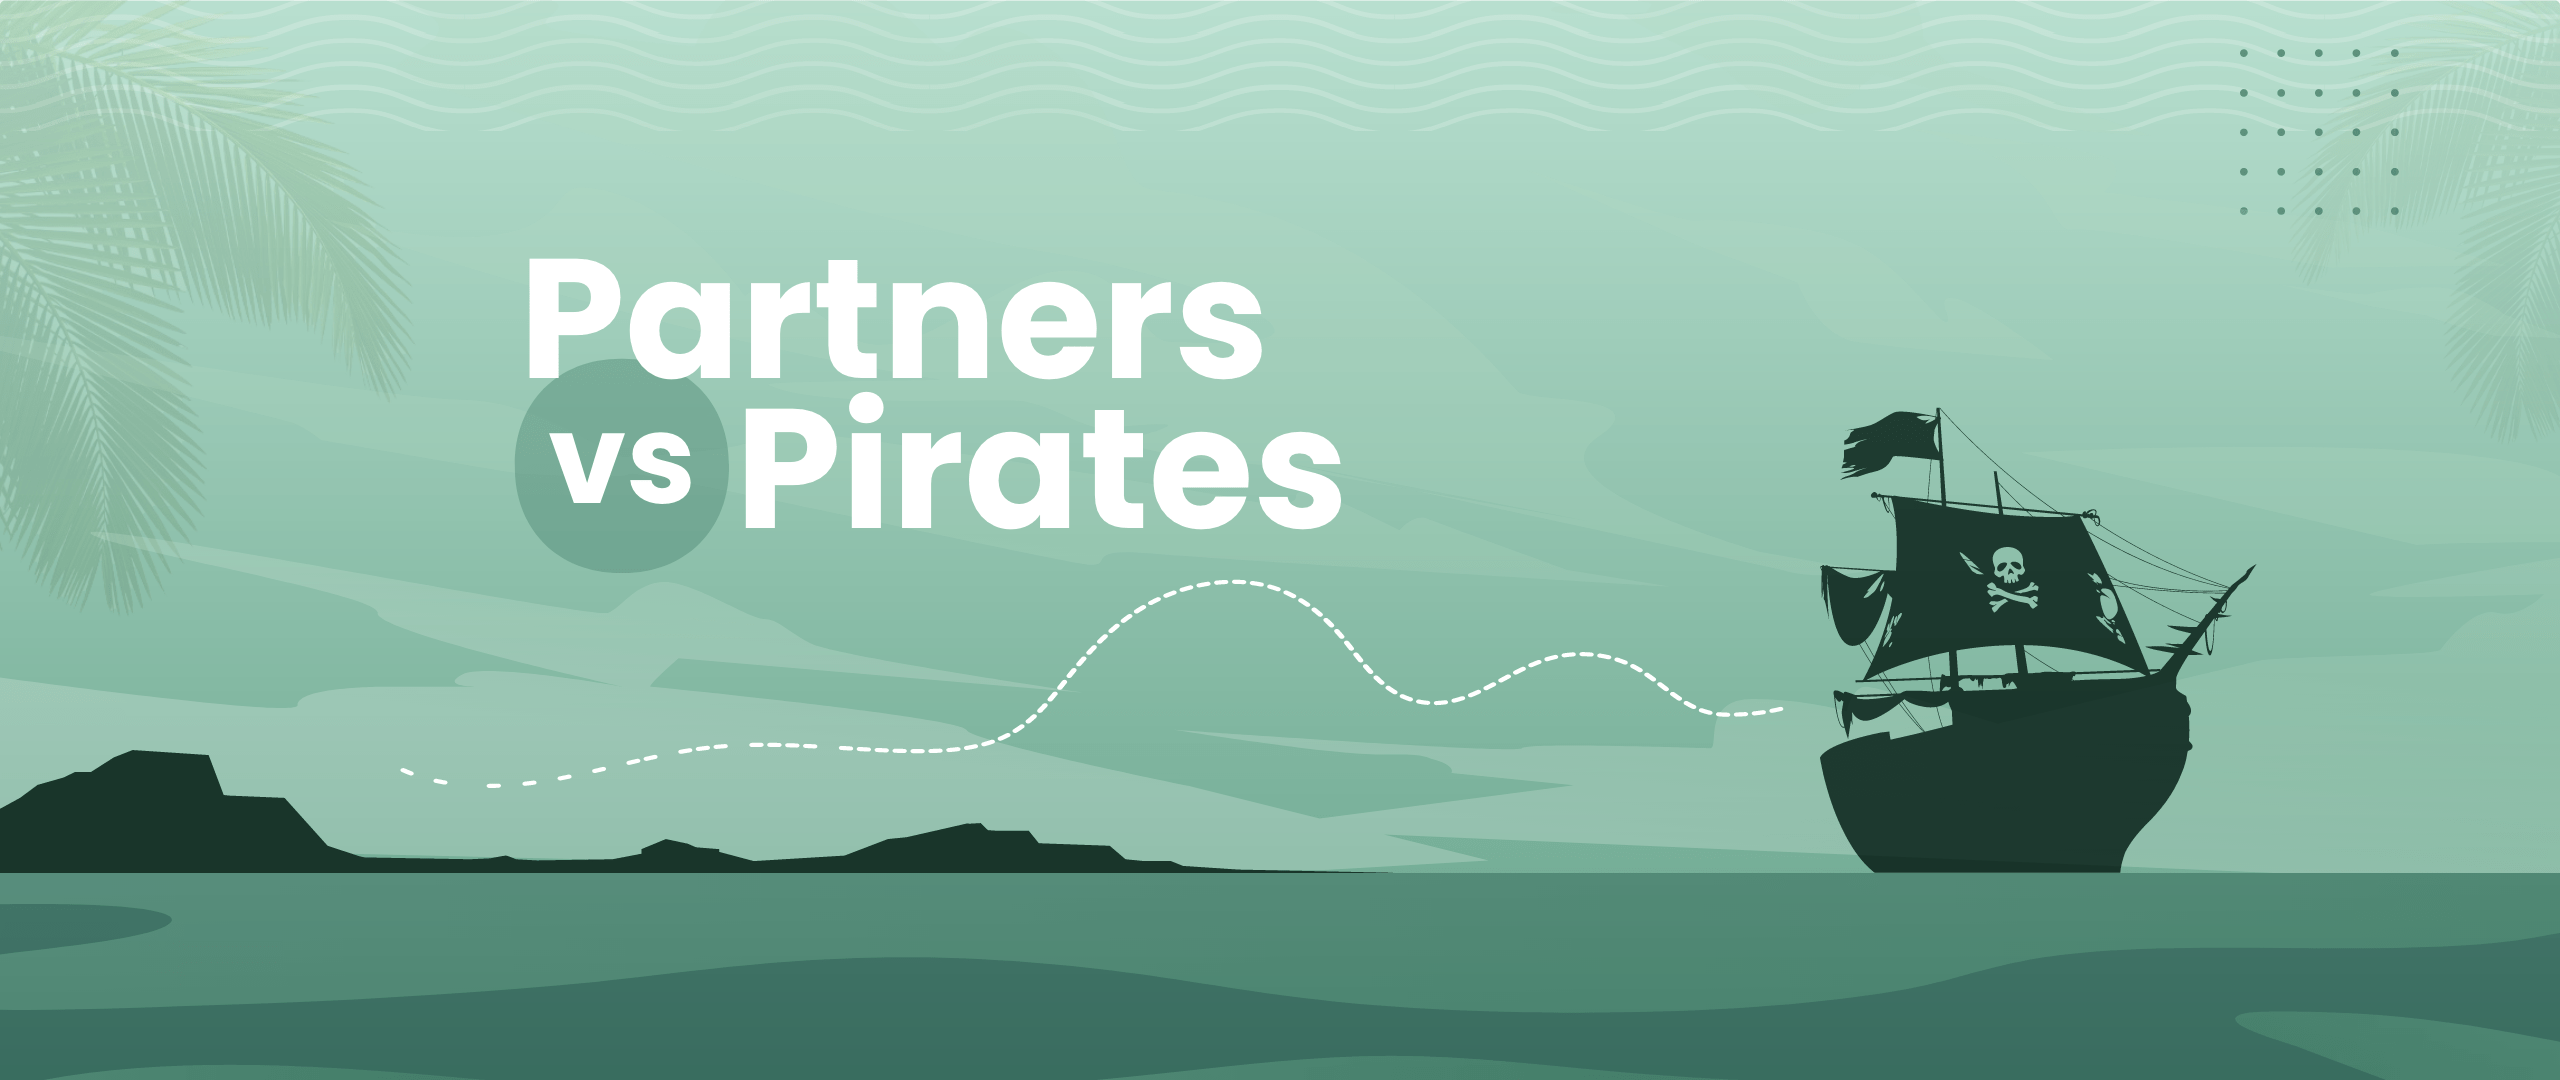 partners-vs-pirates